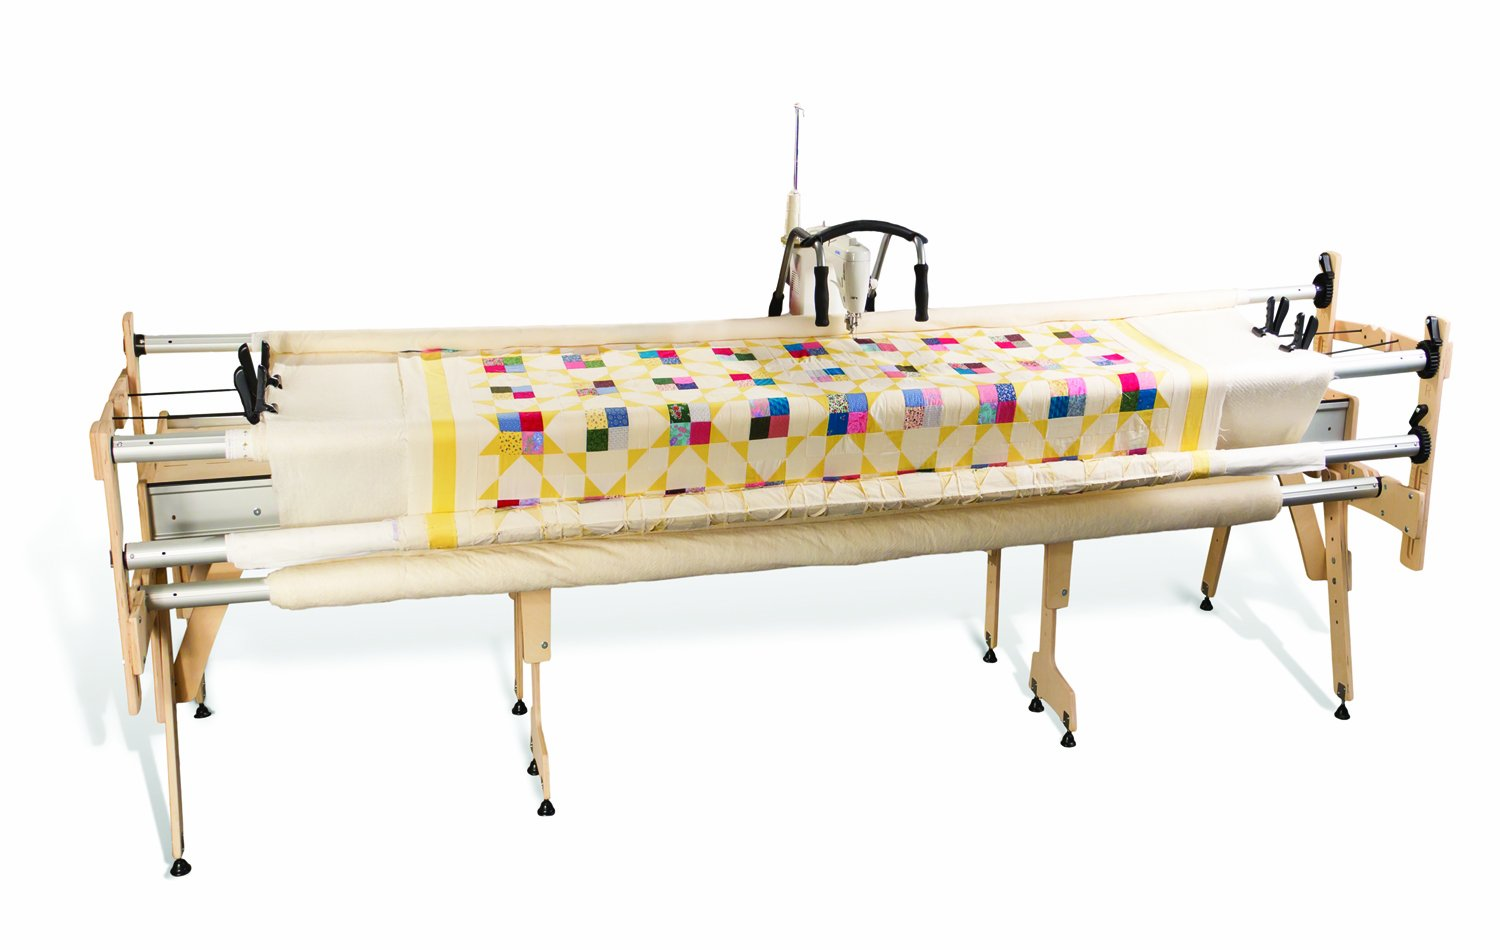 Grace Gracie King Sewing Quilting Frame For Quilting Machine